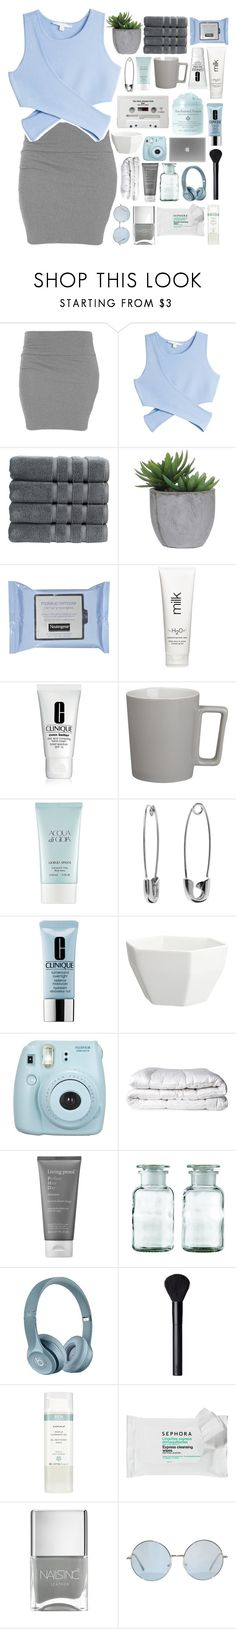 """""""HE ALREADY KNOWS MY LOVE IS FIRE"""" by beautiful-nxghtmare ❤ liked on Polyvore featuring Jonathan Simkhai, Christy, Lux-Art Silks, H2O+, Clinique, CB2, Giorgio Armani, Banana Republic, Panda and CASSETTE"""